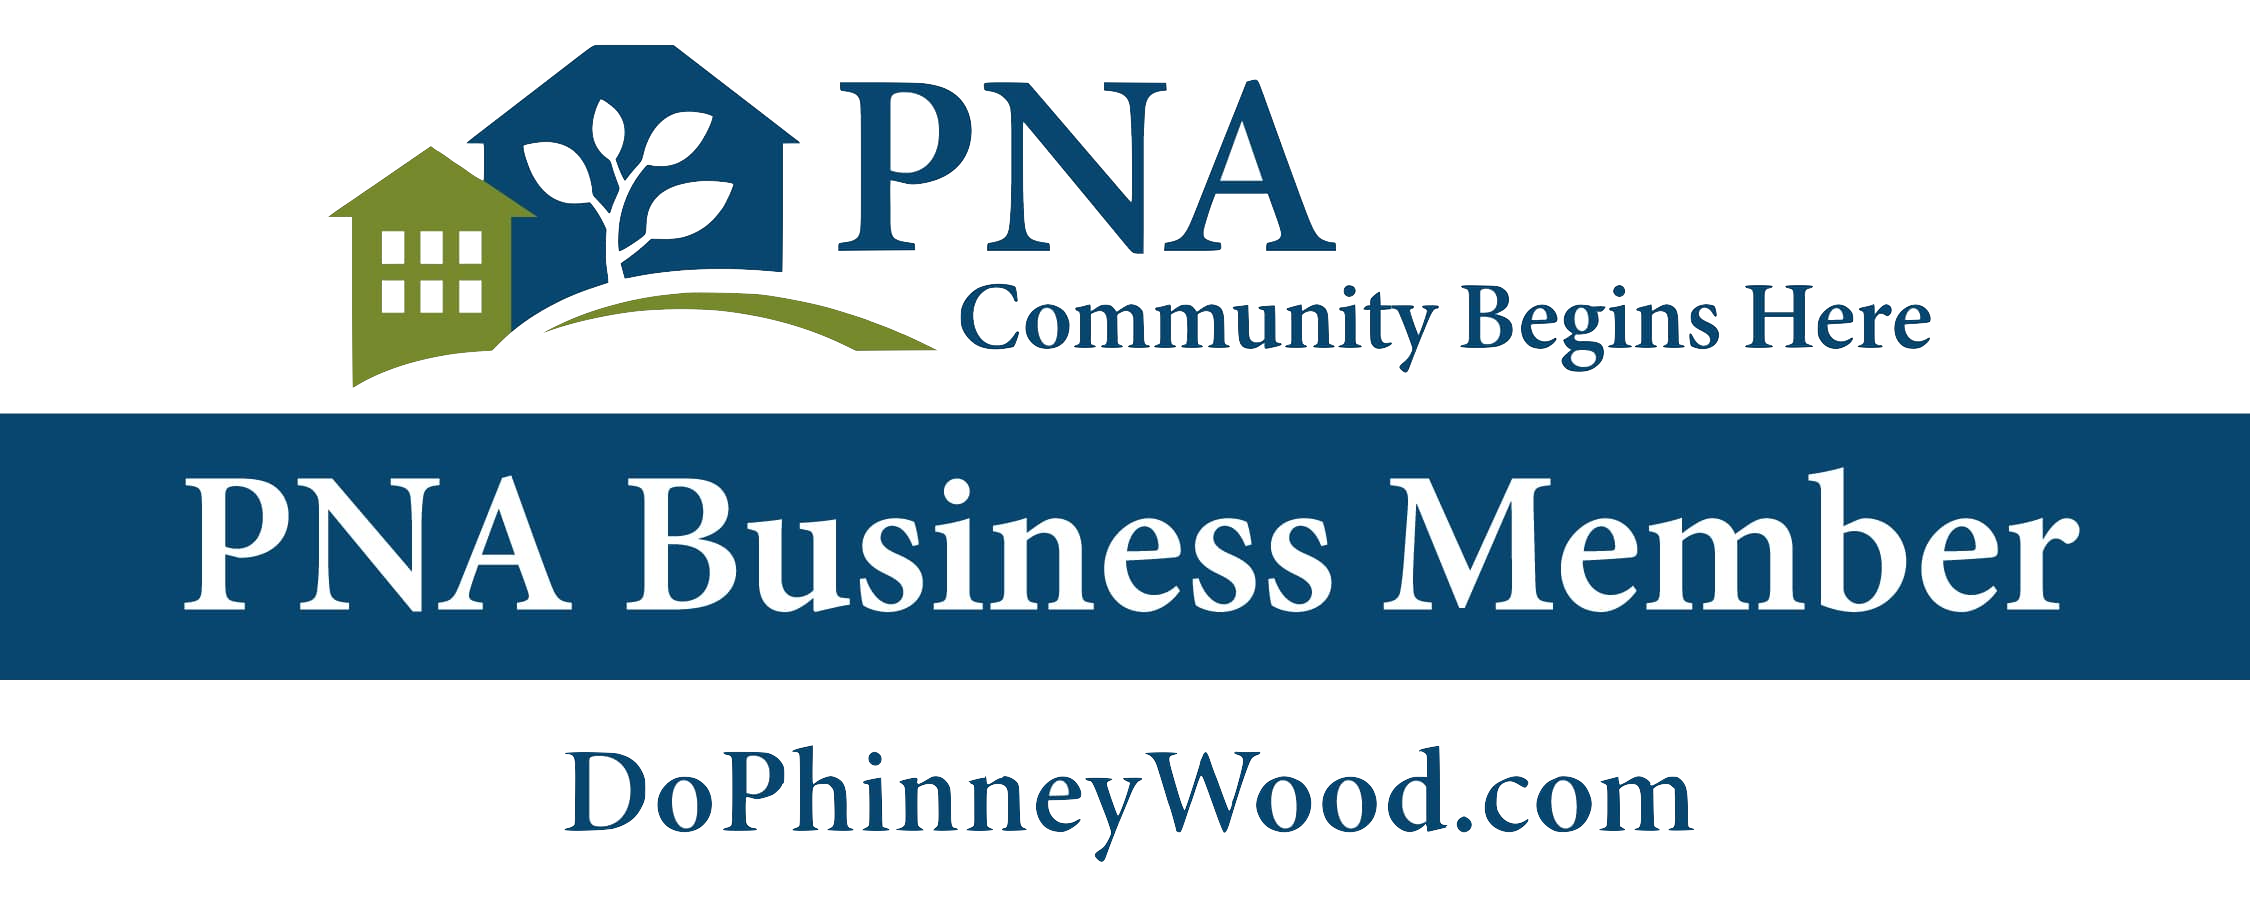 Copy of PNA Business Member